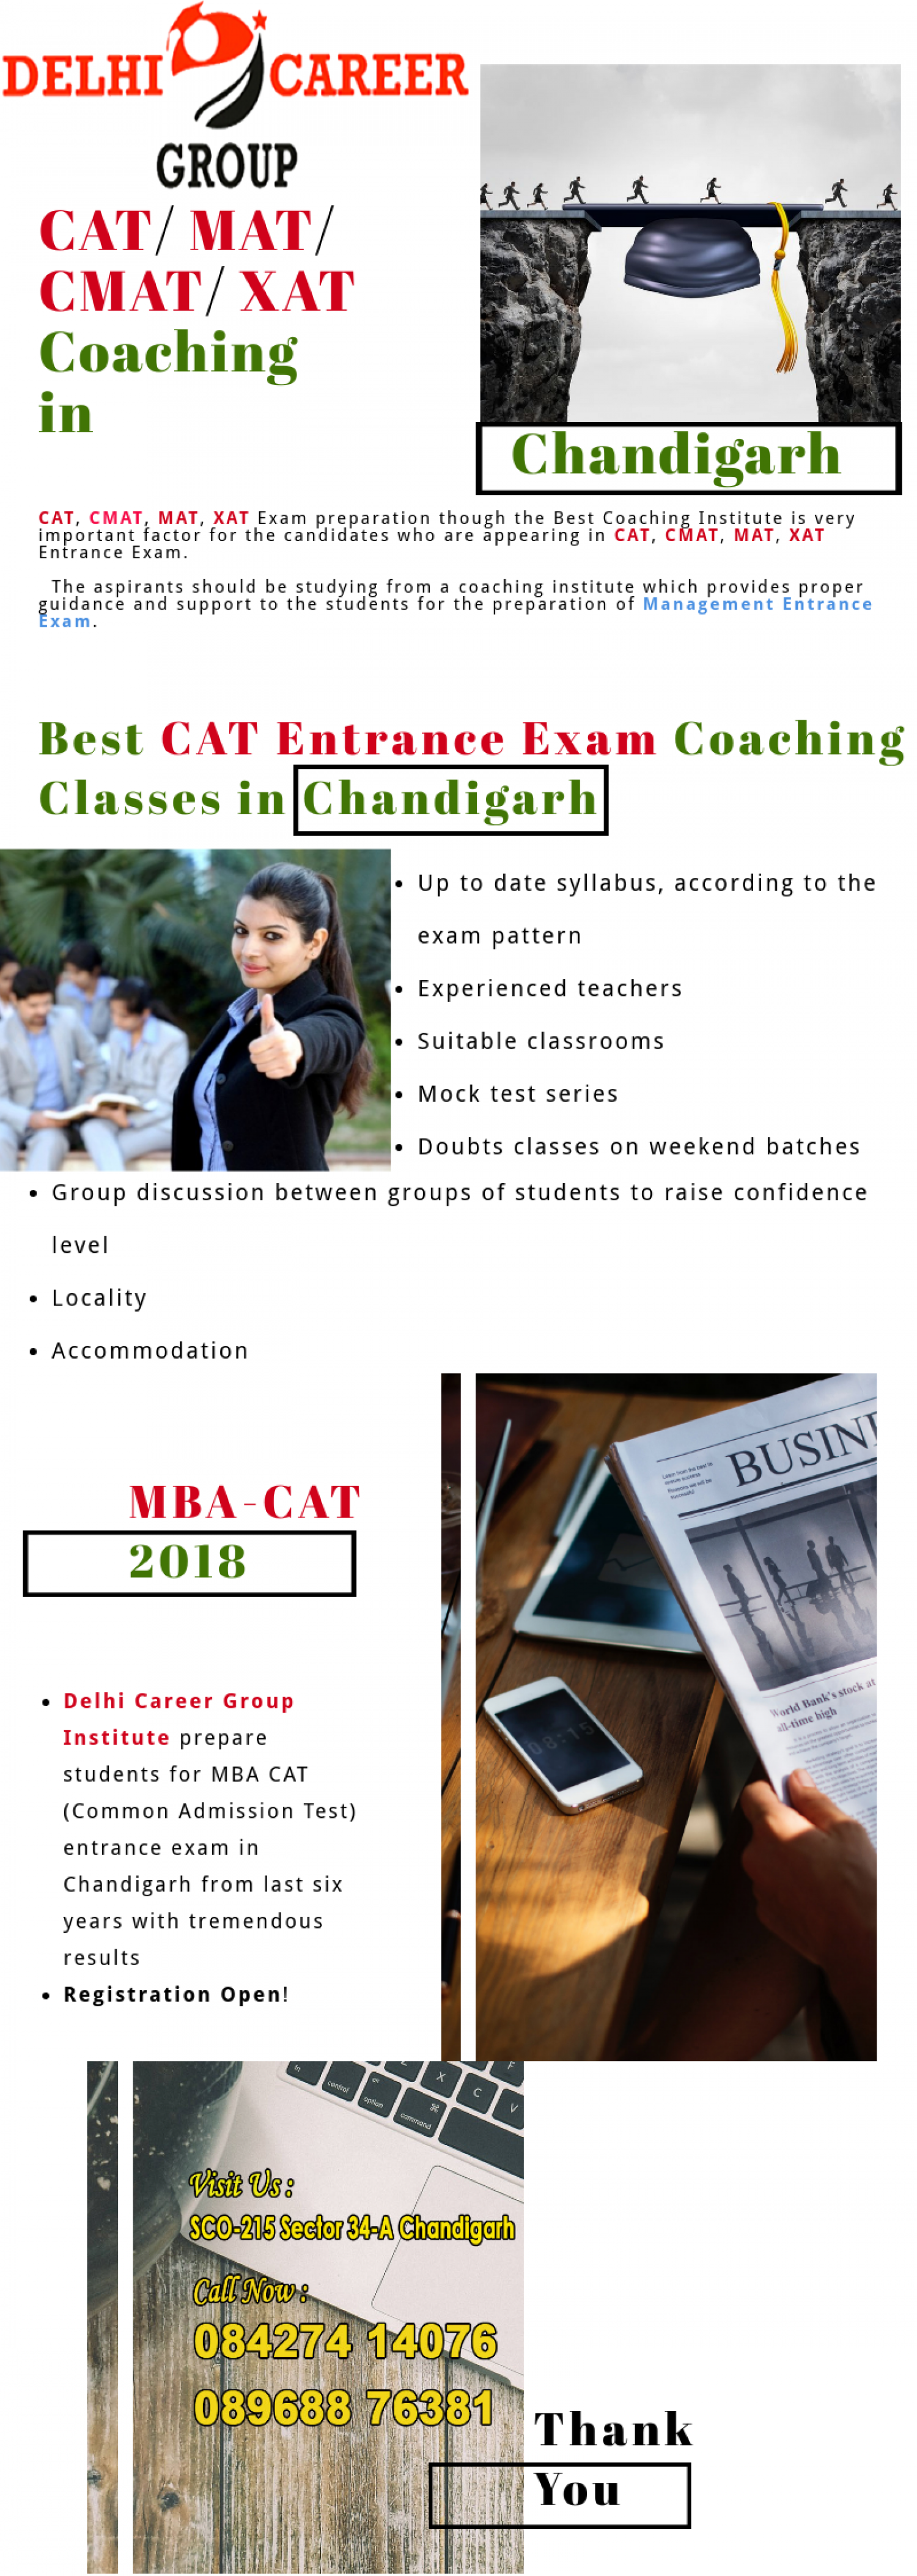 CAT Coaching Centre in Chandigarh Infographic